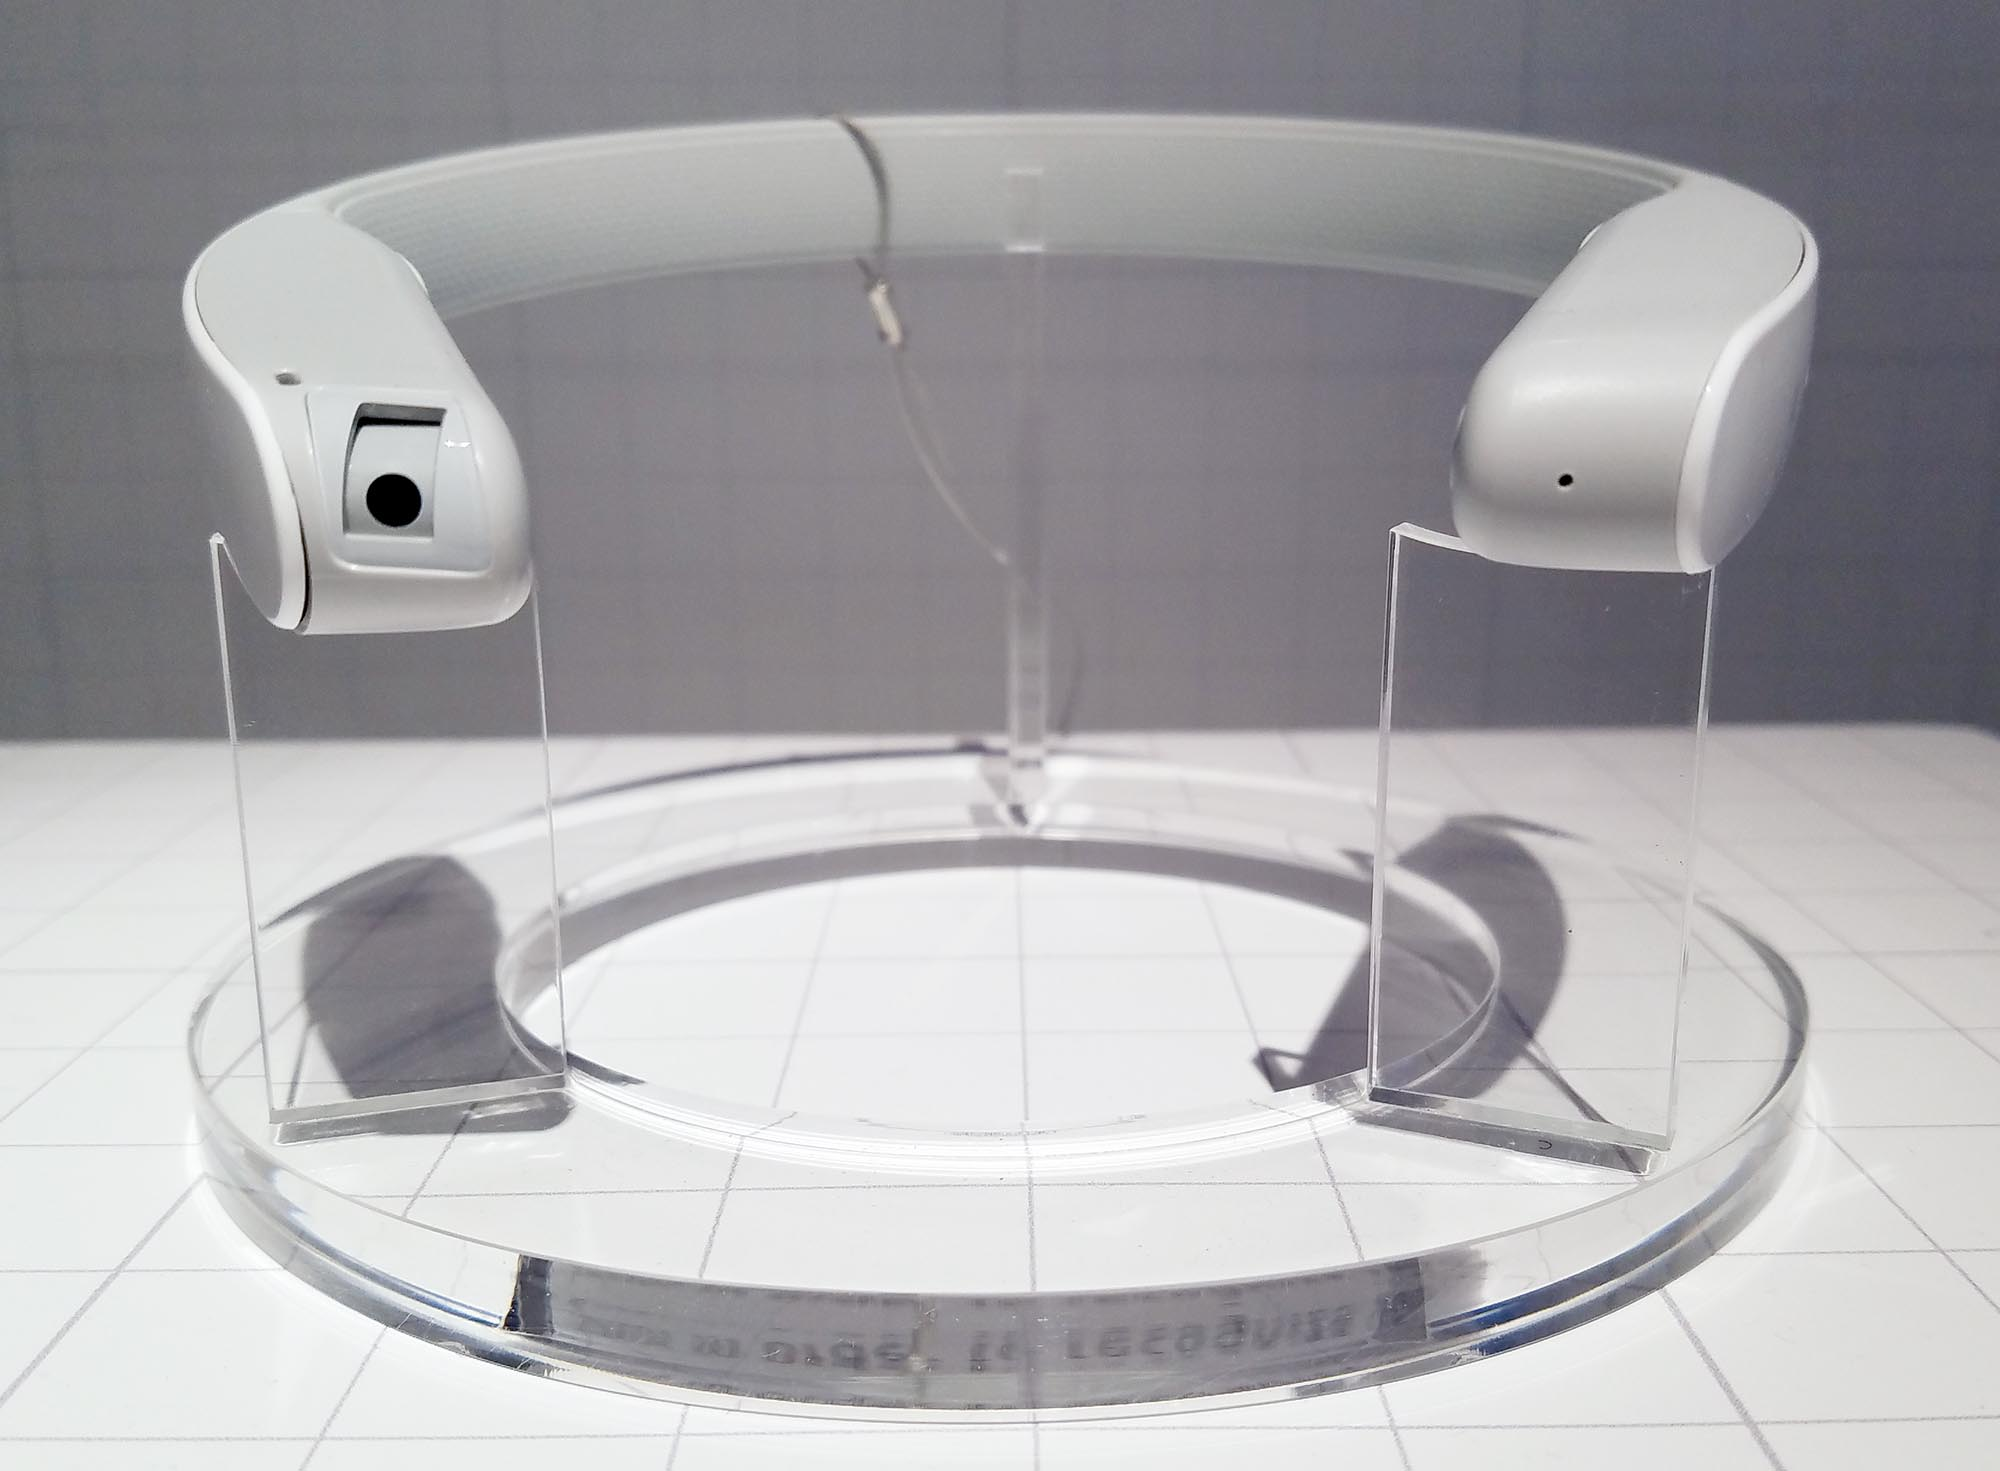 A concept prototype of Sony's interactive display projector.